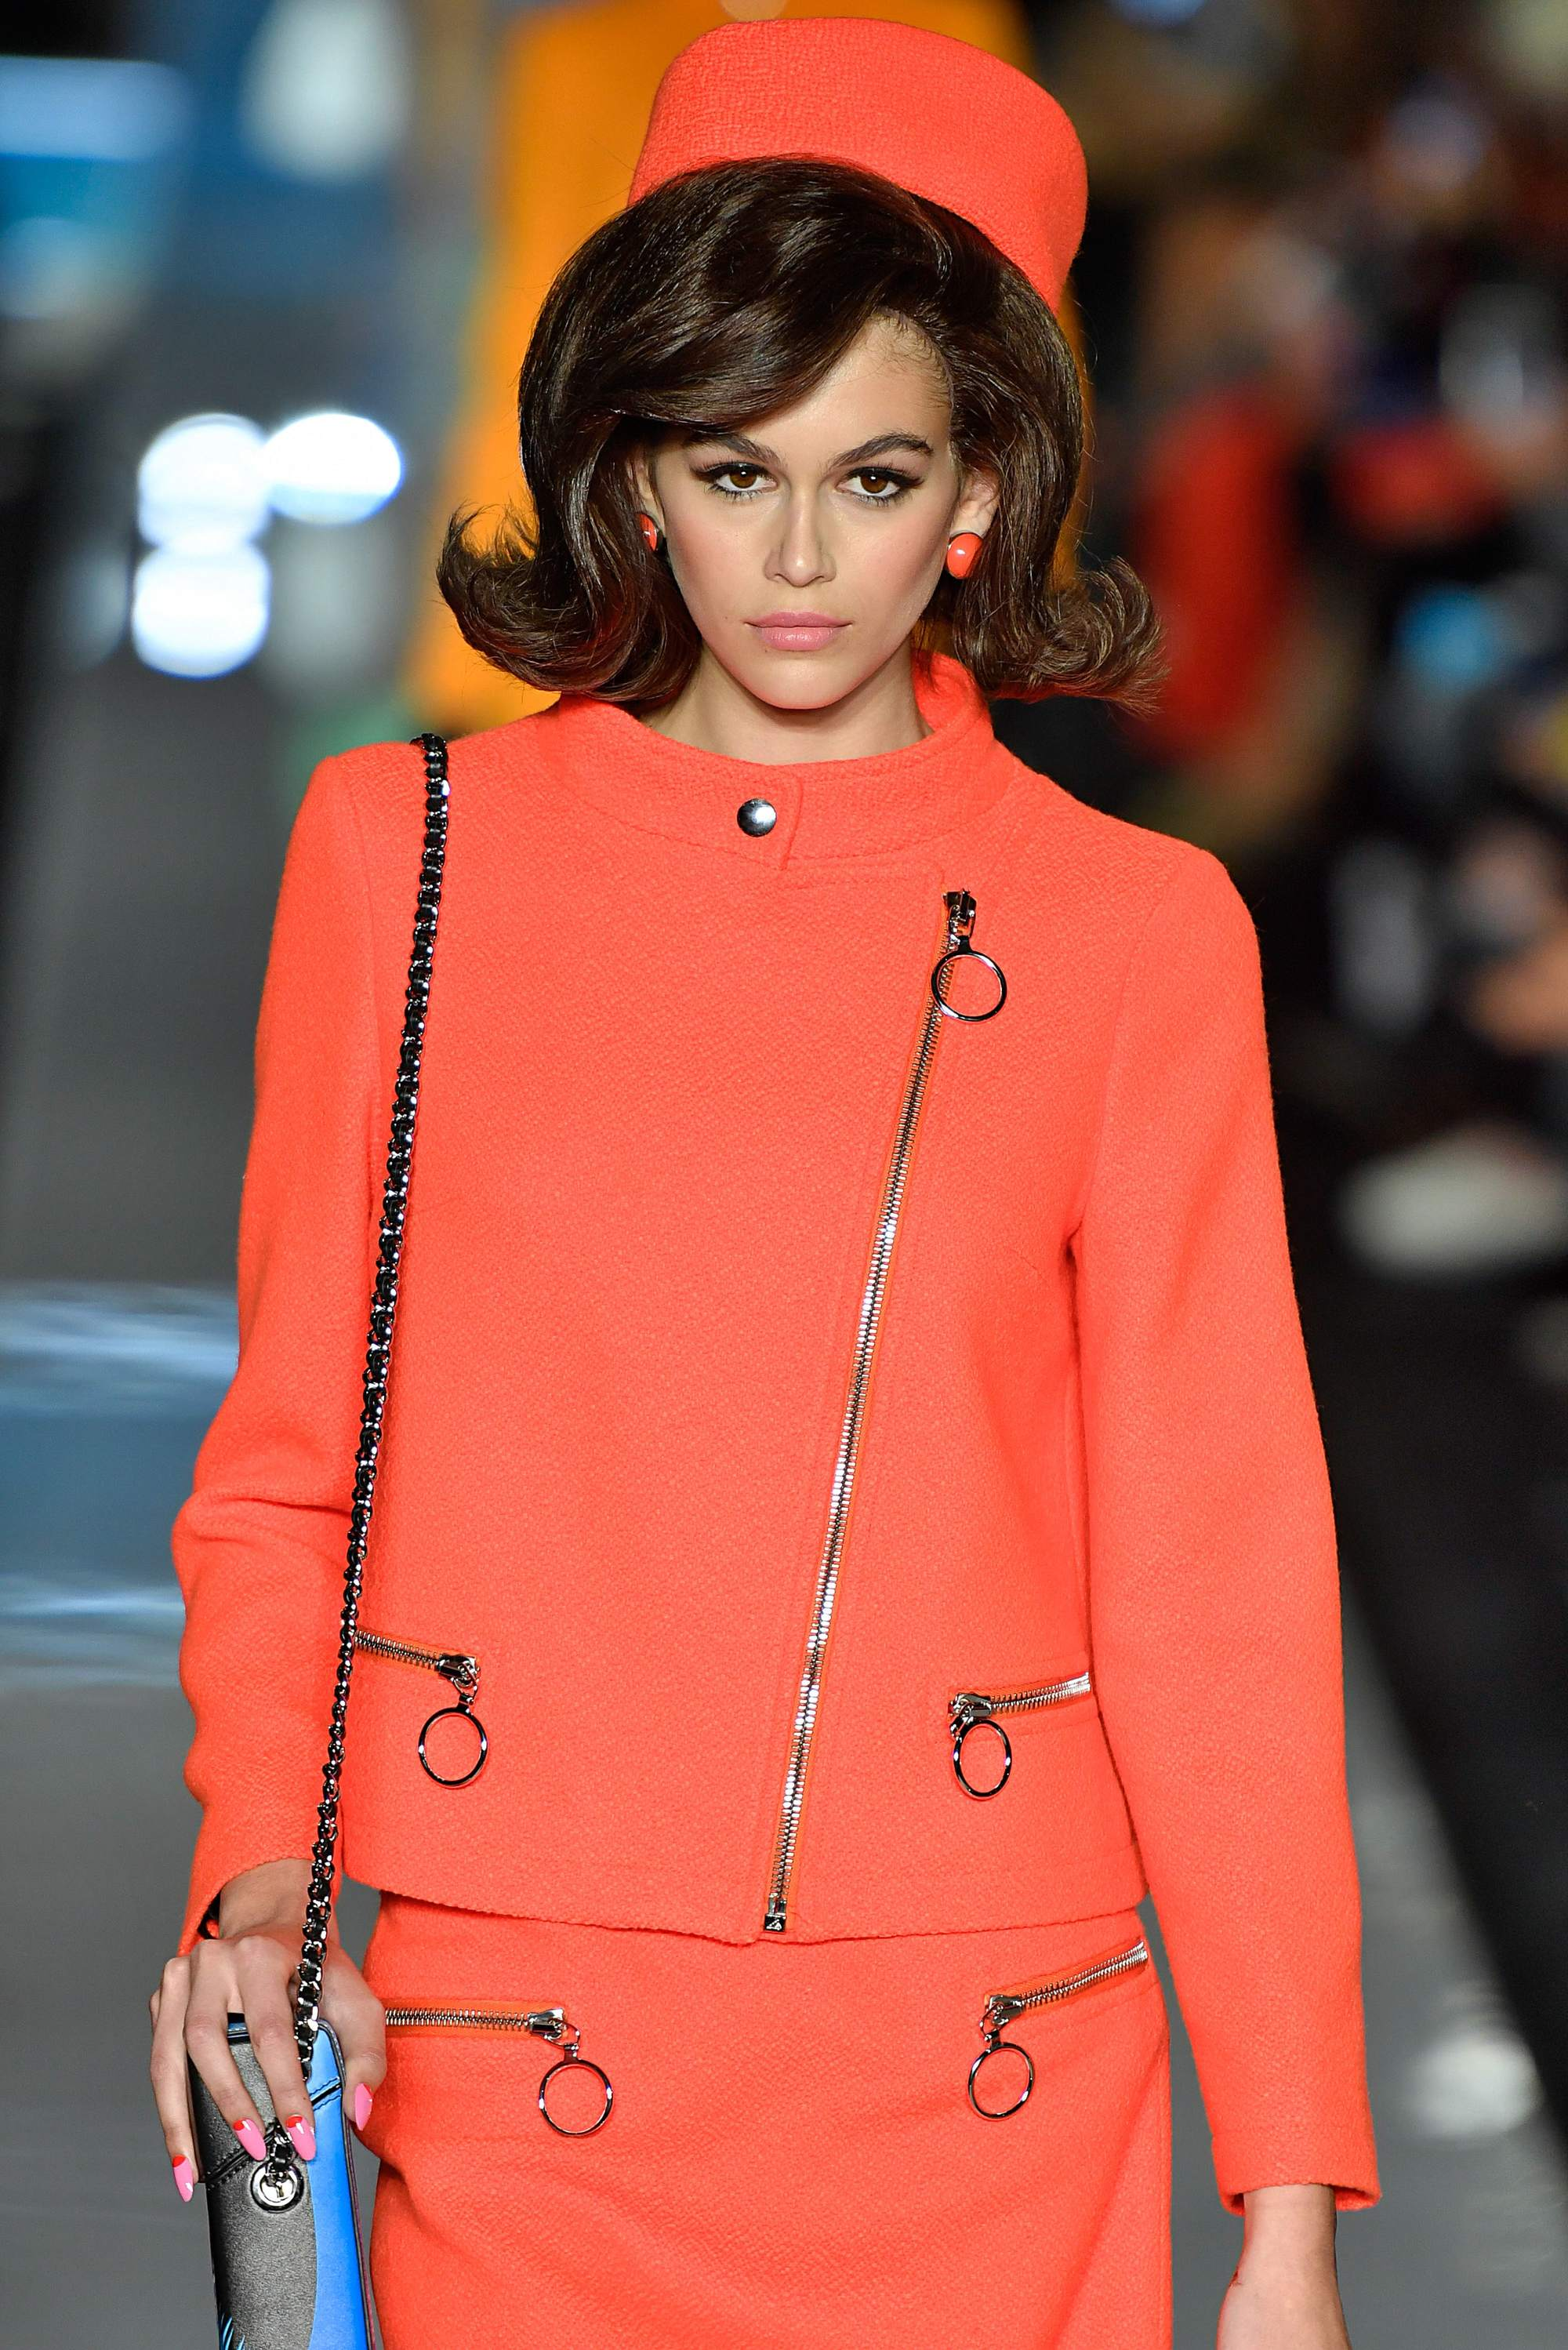 kaia gerber at moschino runway show with flicked out dark brown shoulder length bob and sweeping side fringe wearing bold coral coloured suit and pillbox hat